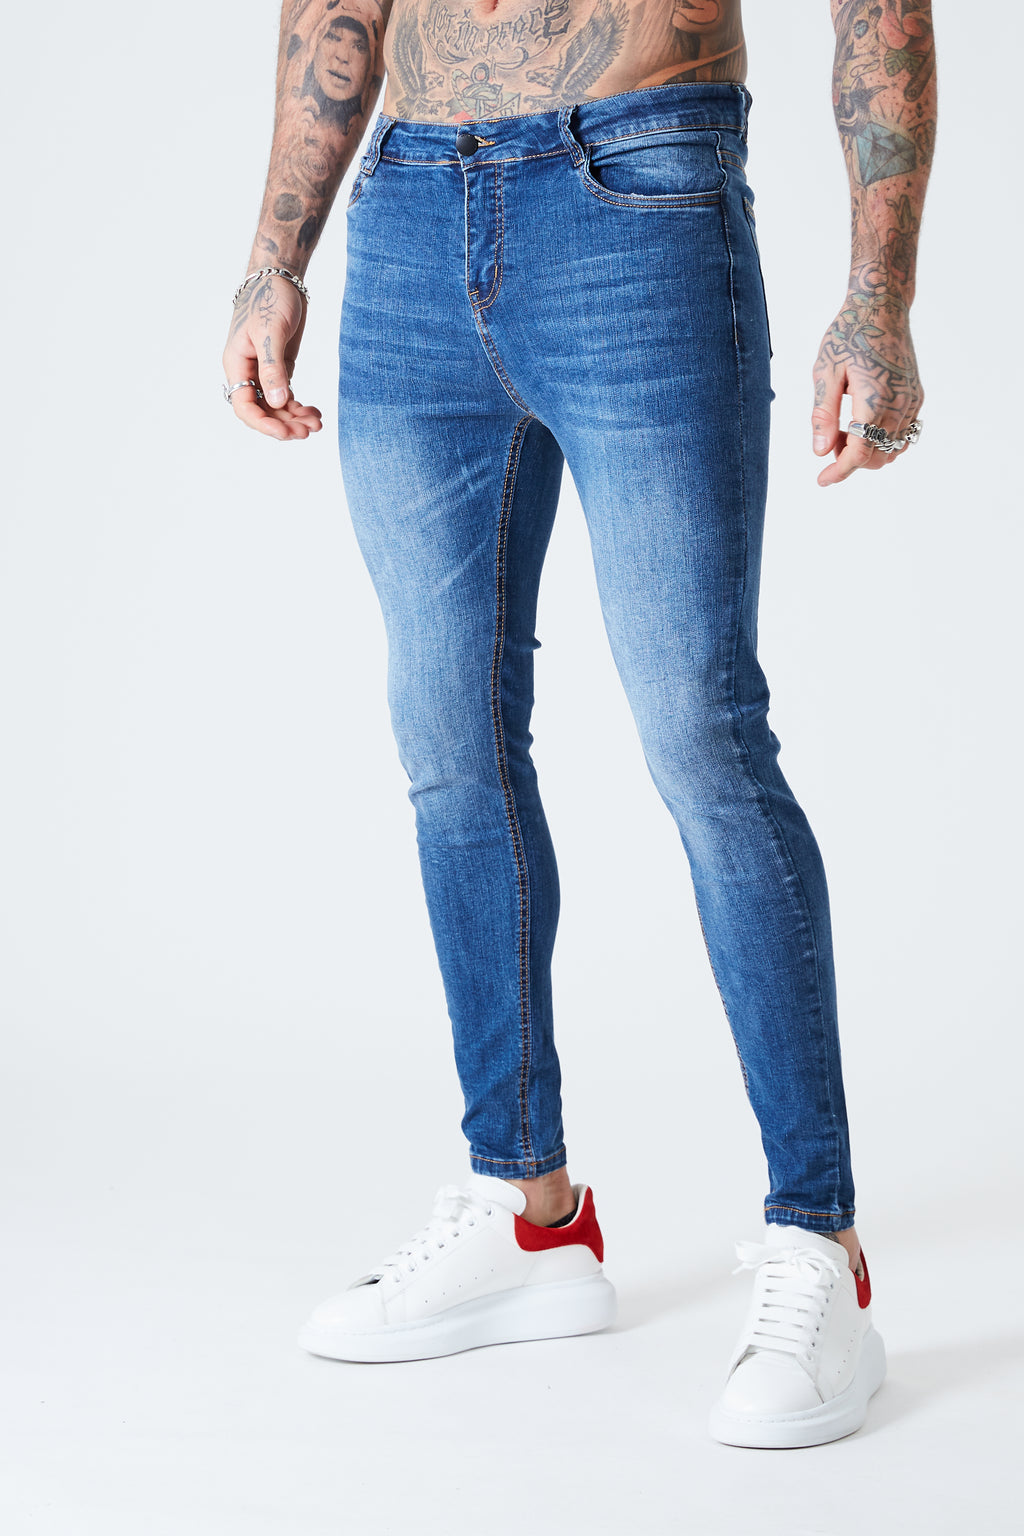 Super Skinny Spray On Jeans - Mid Blue - SVPPLY. STUDIOS